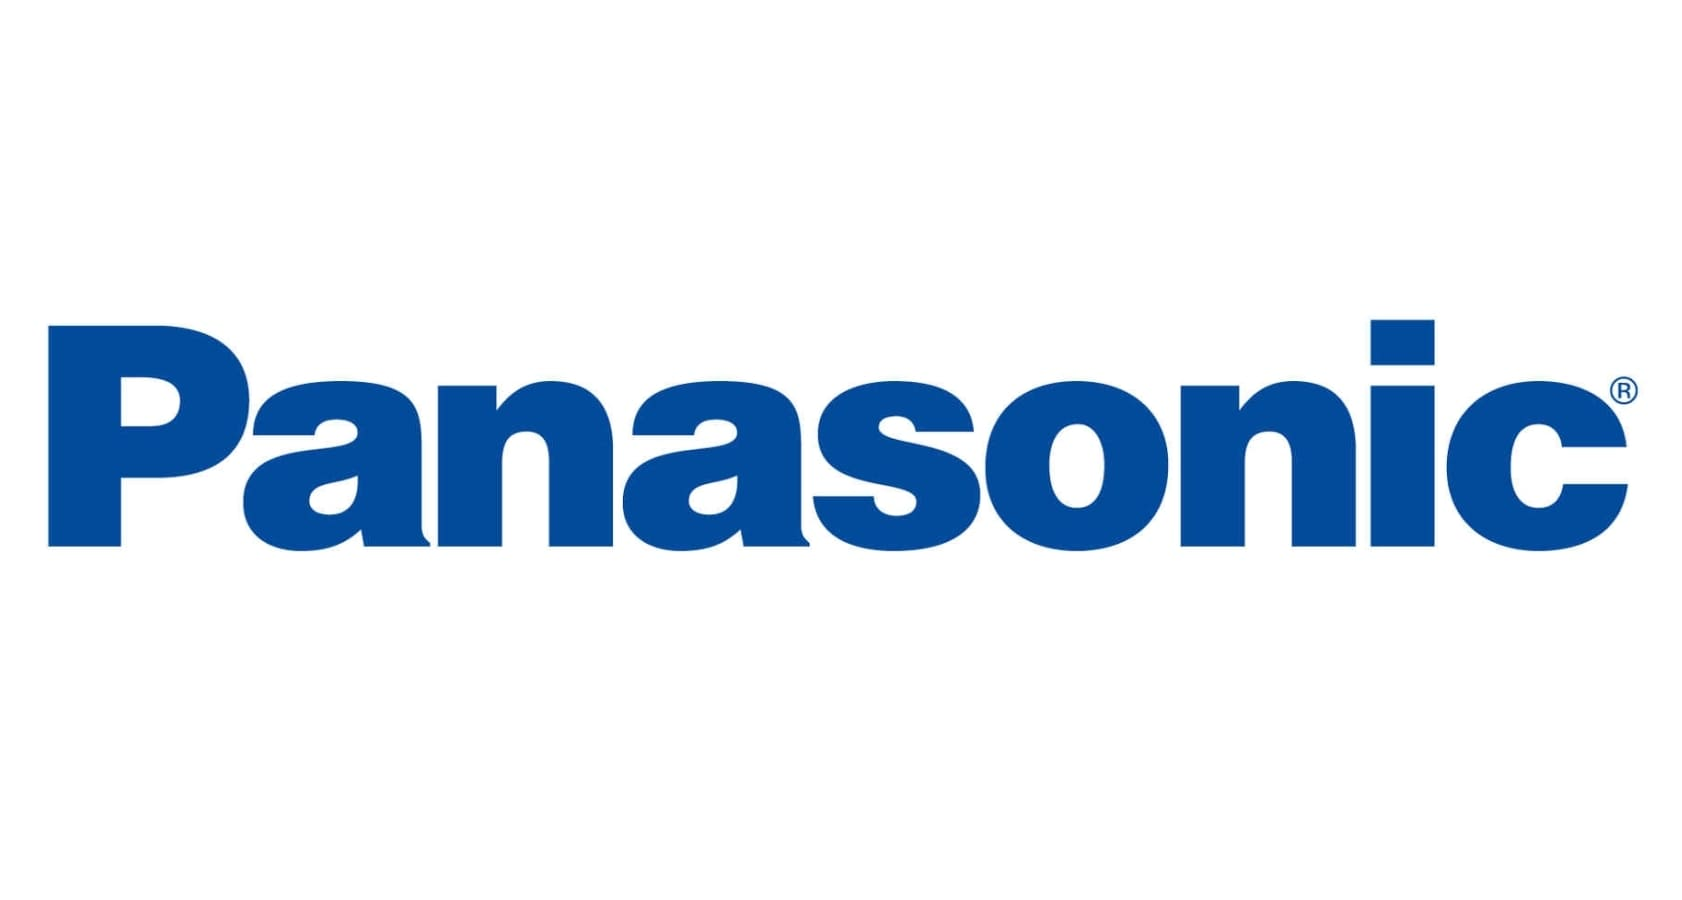 Panasonic logo and symbol, meaning, history, PNG